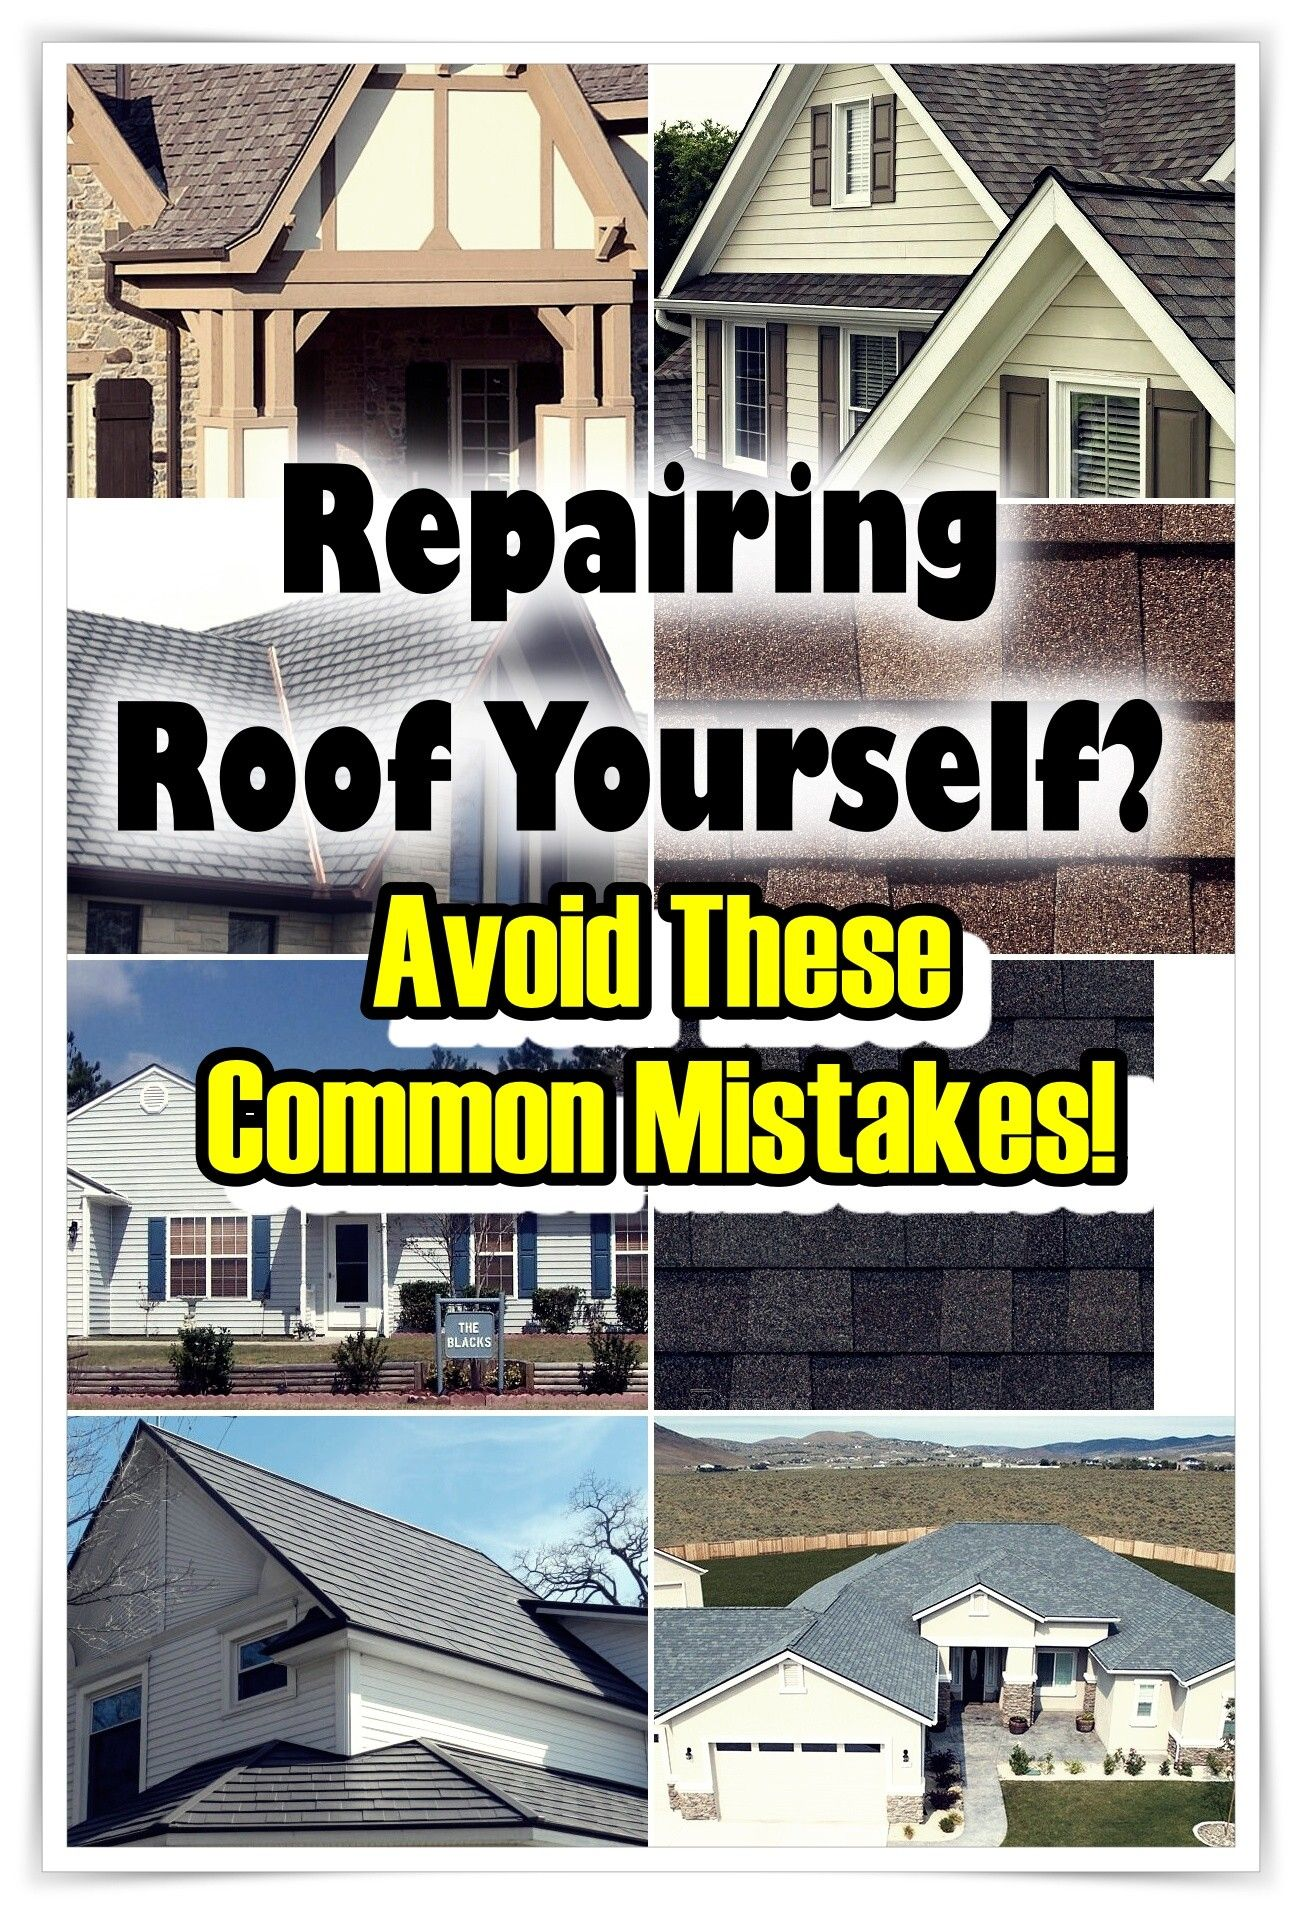 Is Roof Replacement Covered By Insurance